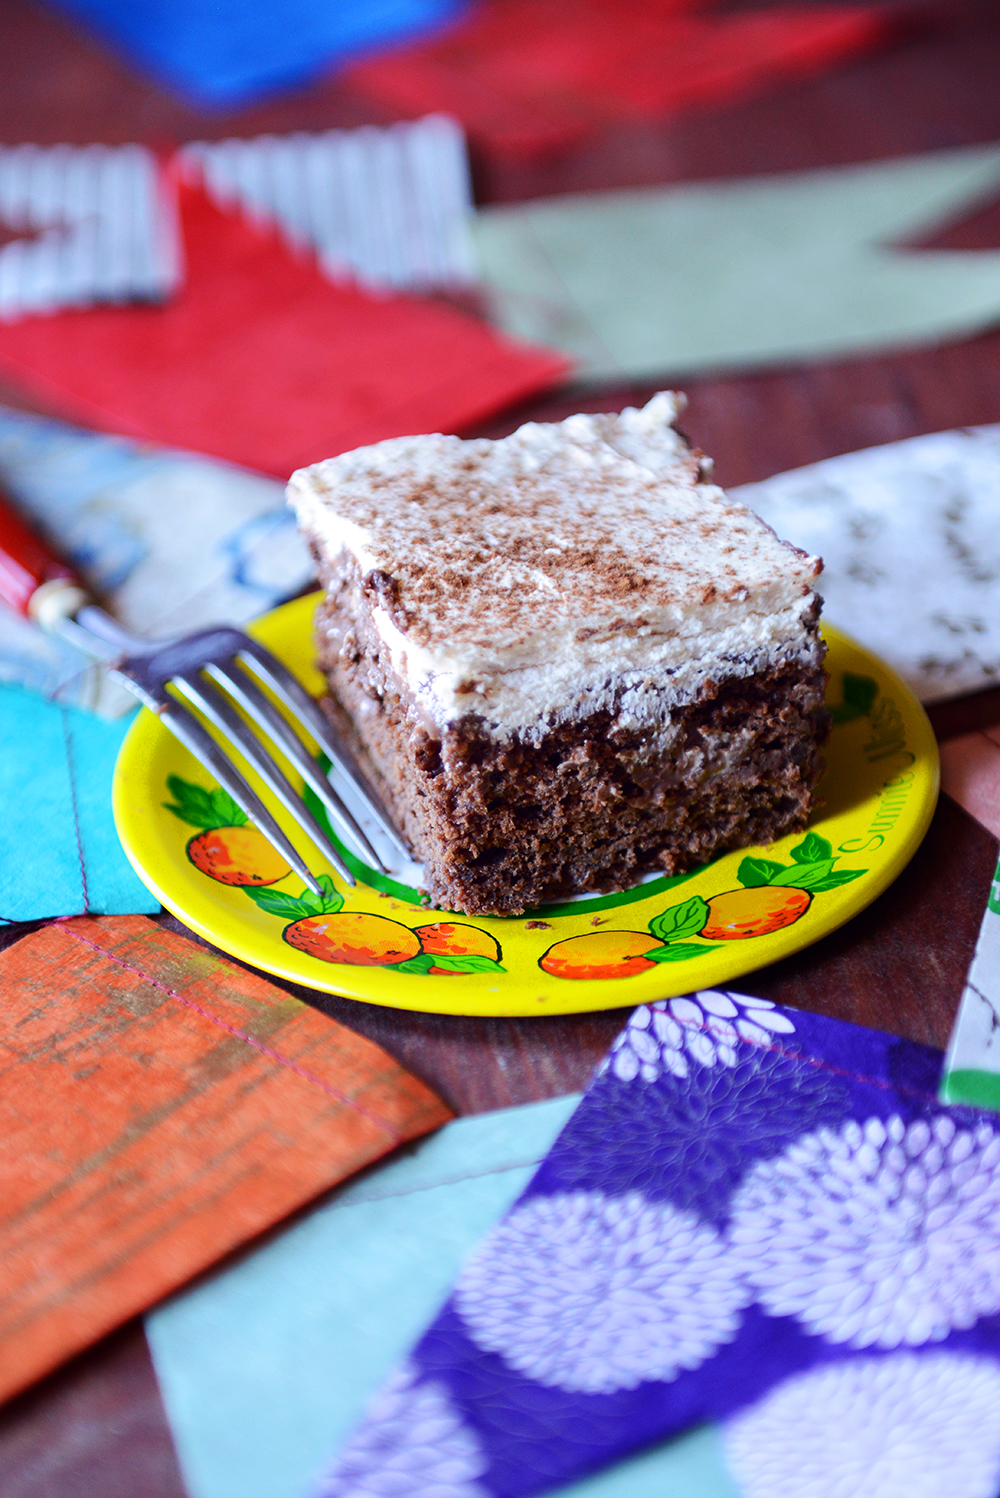 Whole Wheat Chocolate Banana Tres Leches Cake - With The Grains